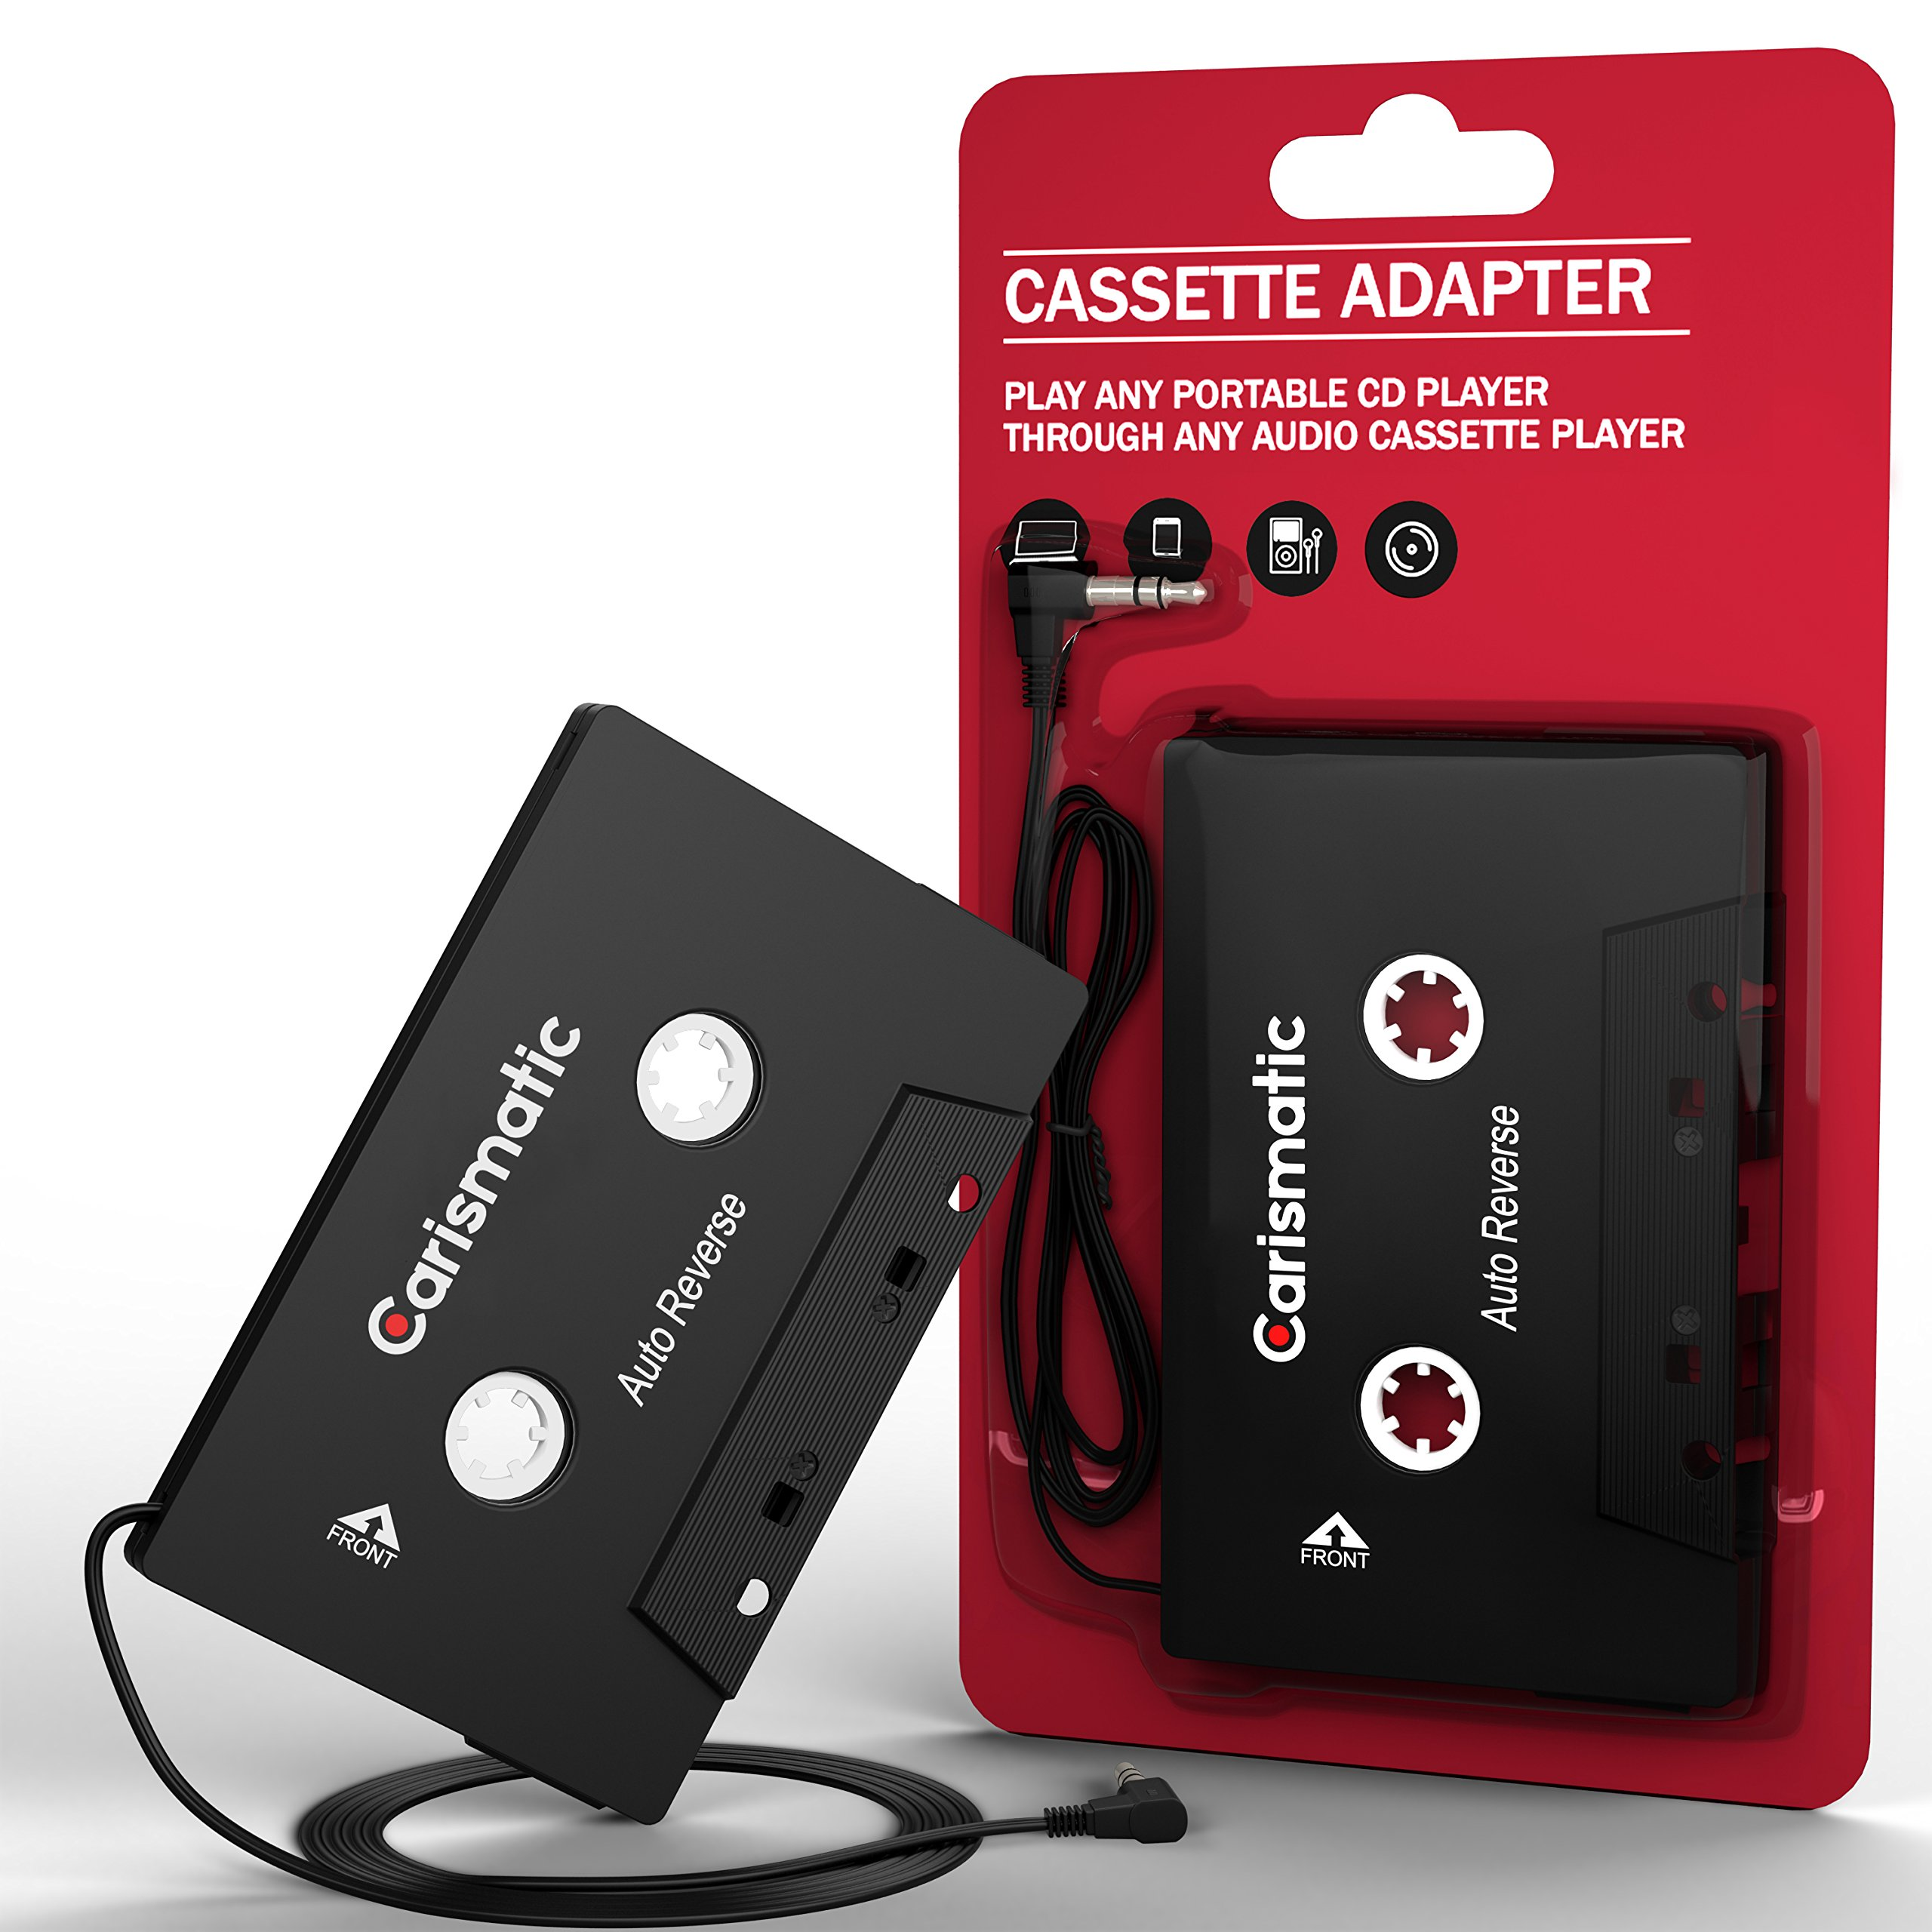 Carismatic 3.5mm Stereo Plug Universal Audio Cassette Adapter for iPhone/Android/Smartphones - Black by Carismatic (Image #6)